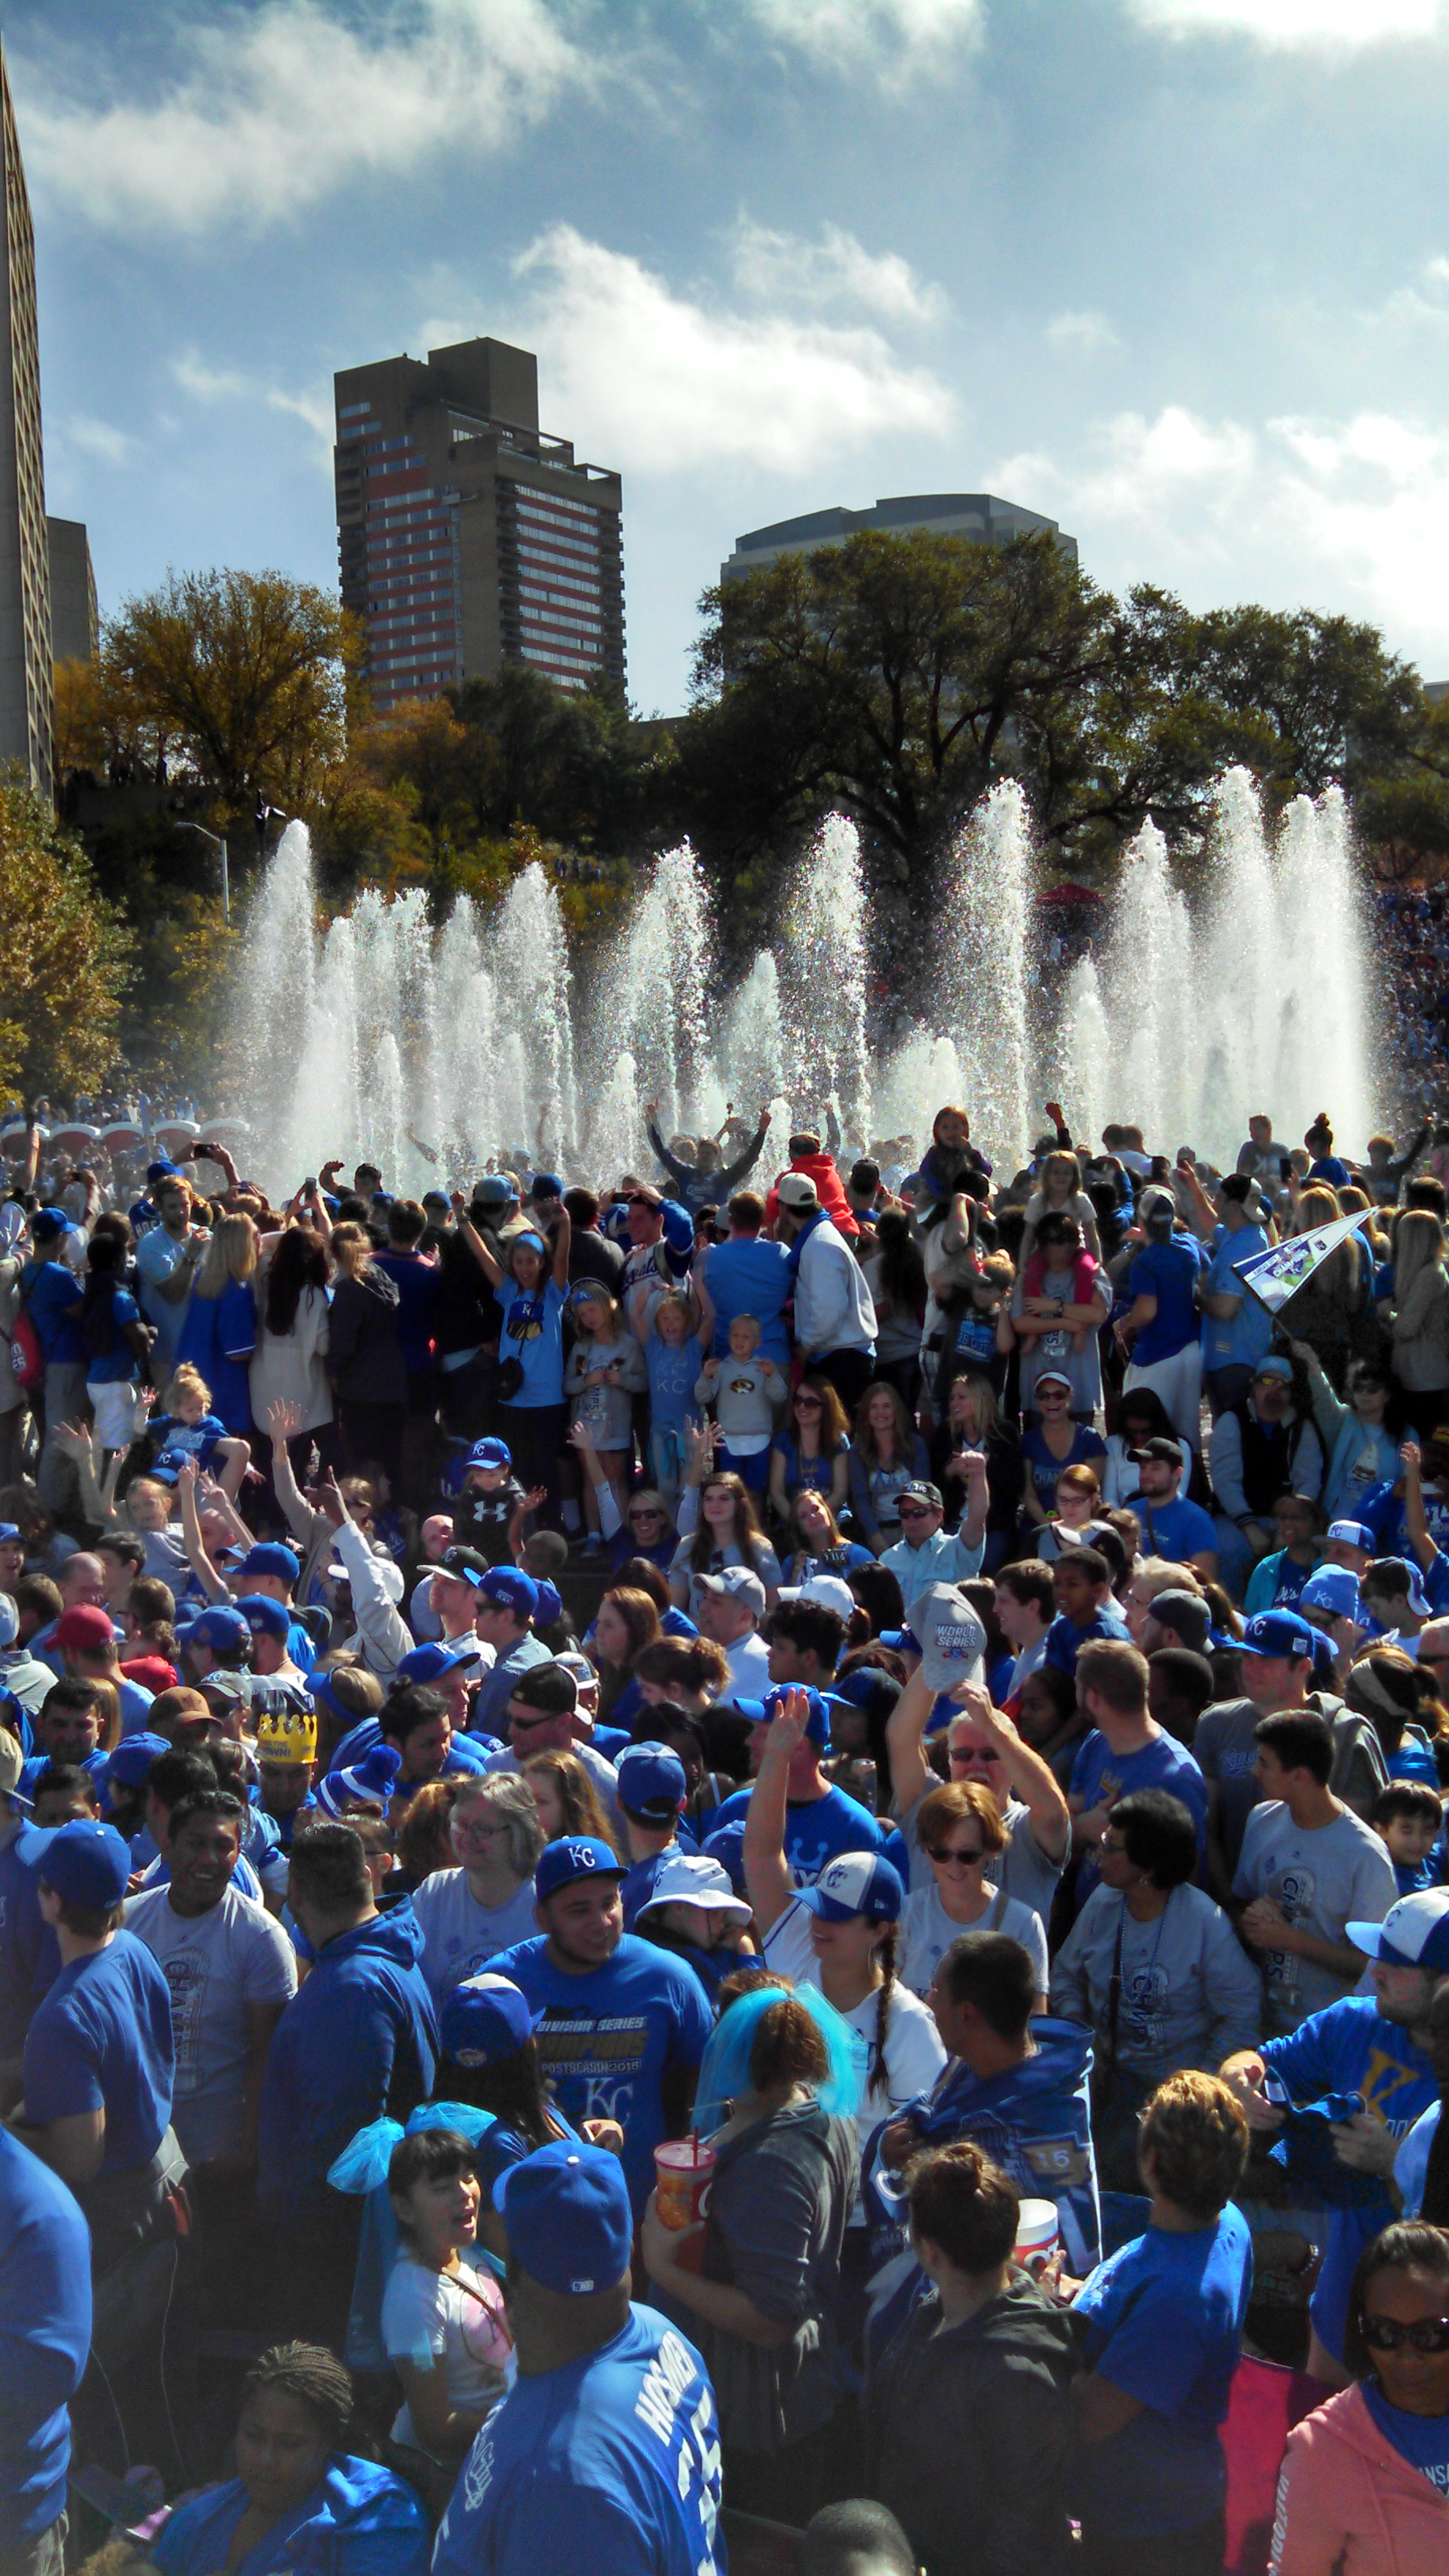 A Royals crowd packed around the fountains at Union Station. (Photo by Greg Echlin)